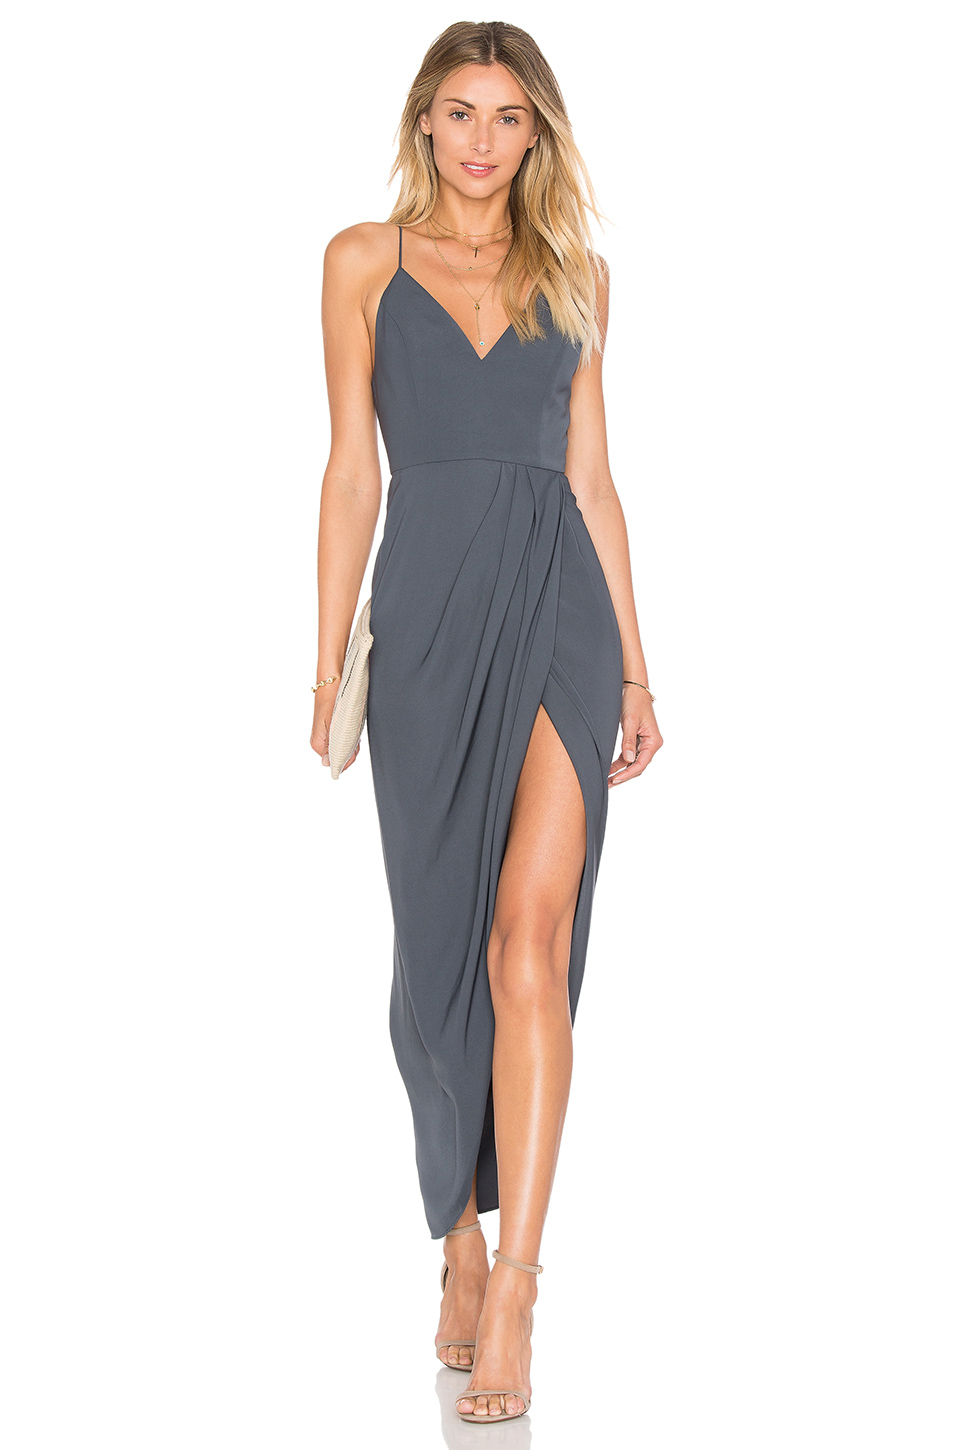 Shona joy Stellar Drape Dress in Gray | Lyst